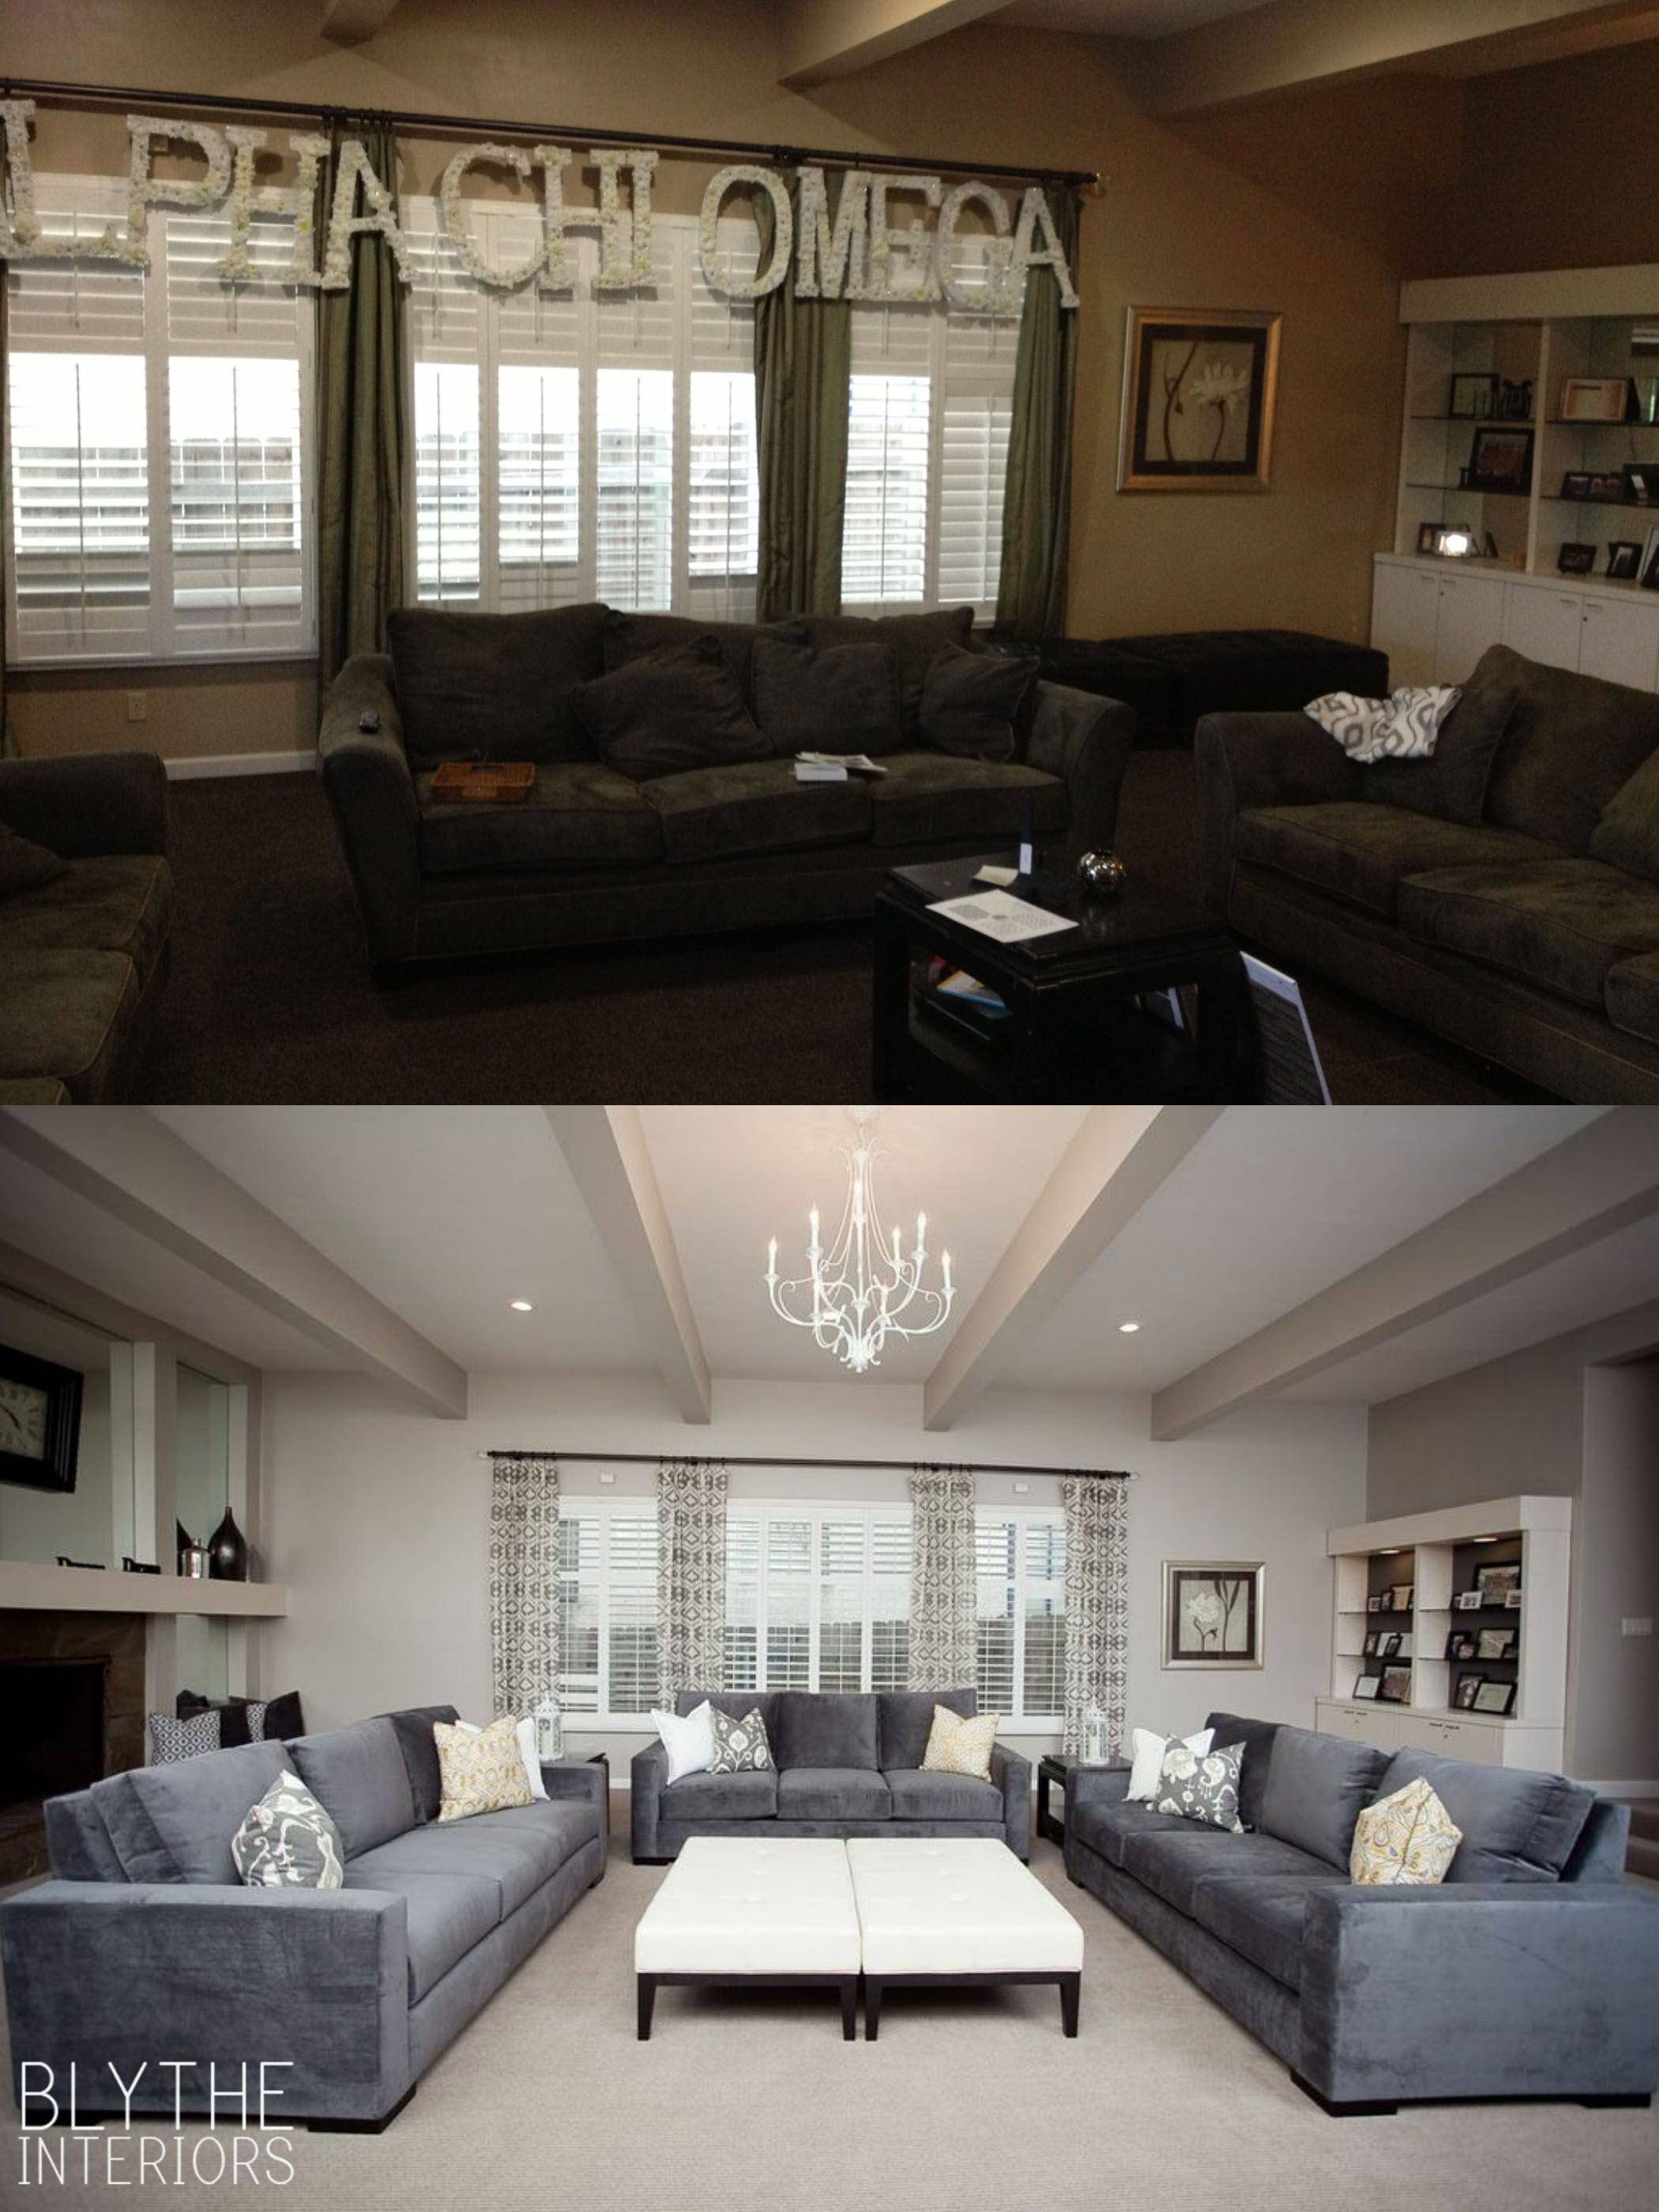 This sorority house badly needed a makeover. We replaced the dated curtains  and sofas with